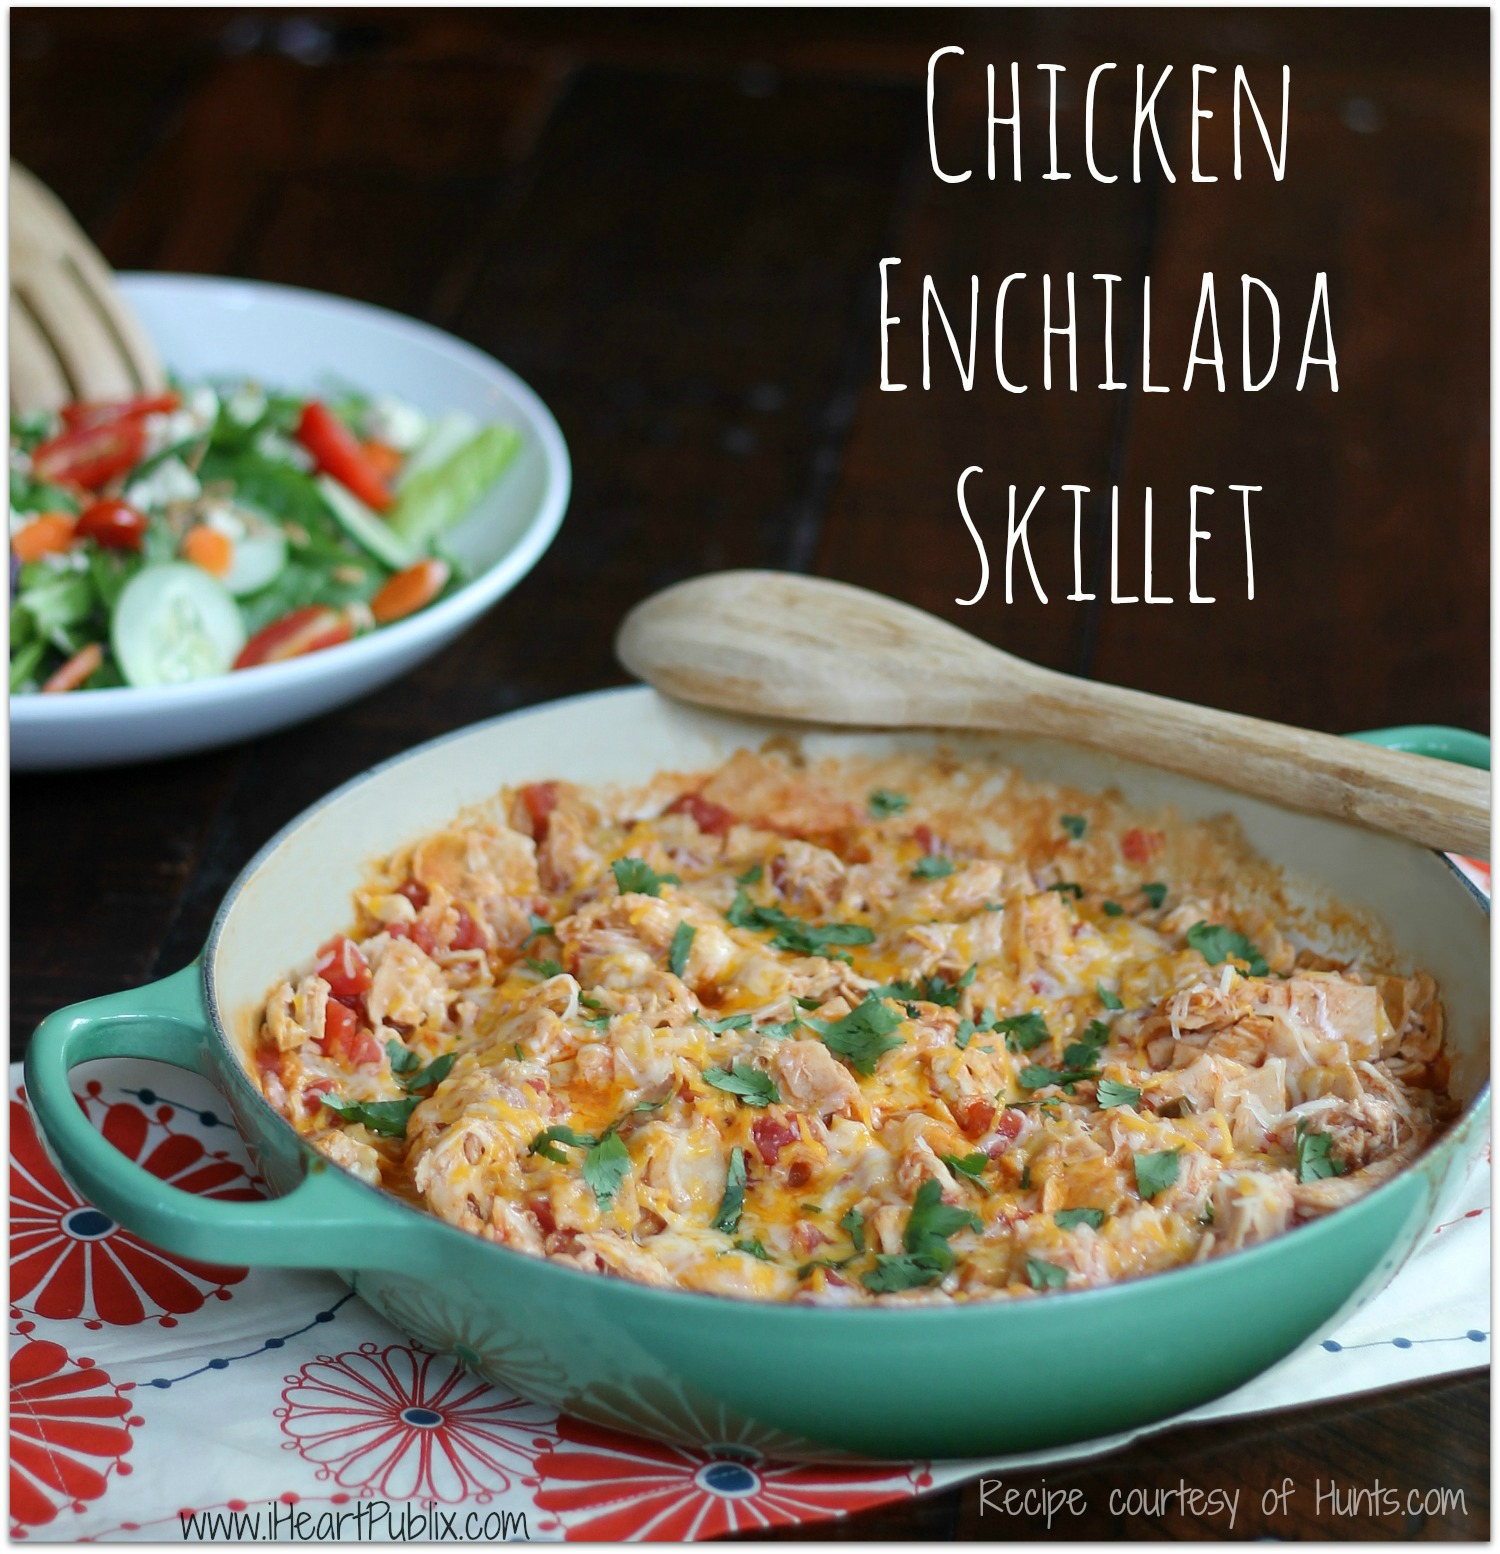 Chicken-Enchilada-Skillet-